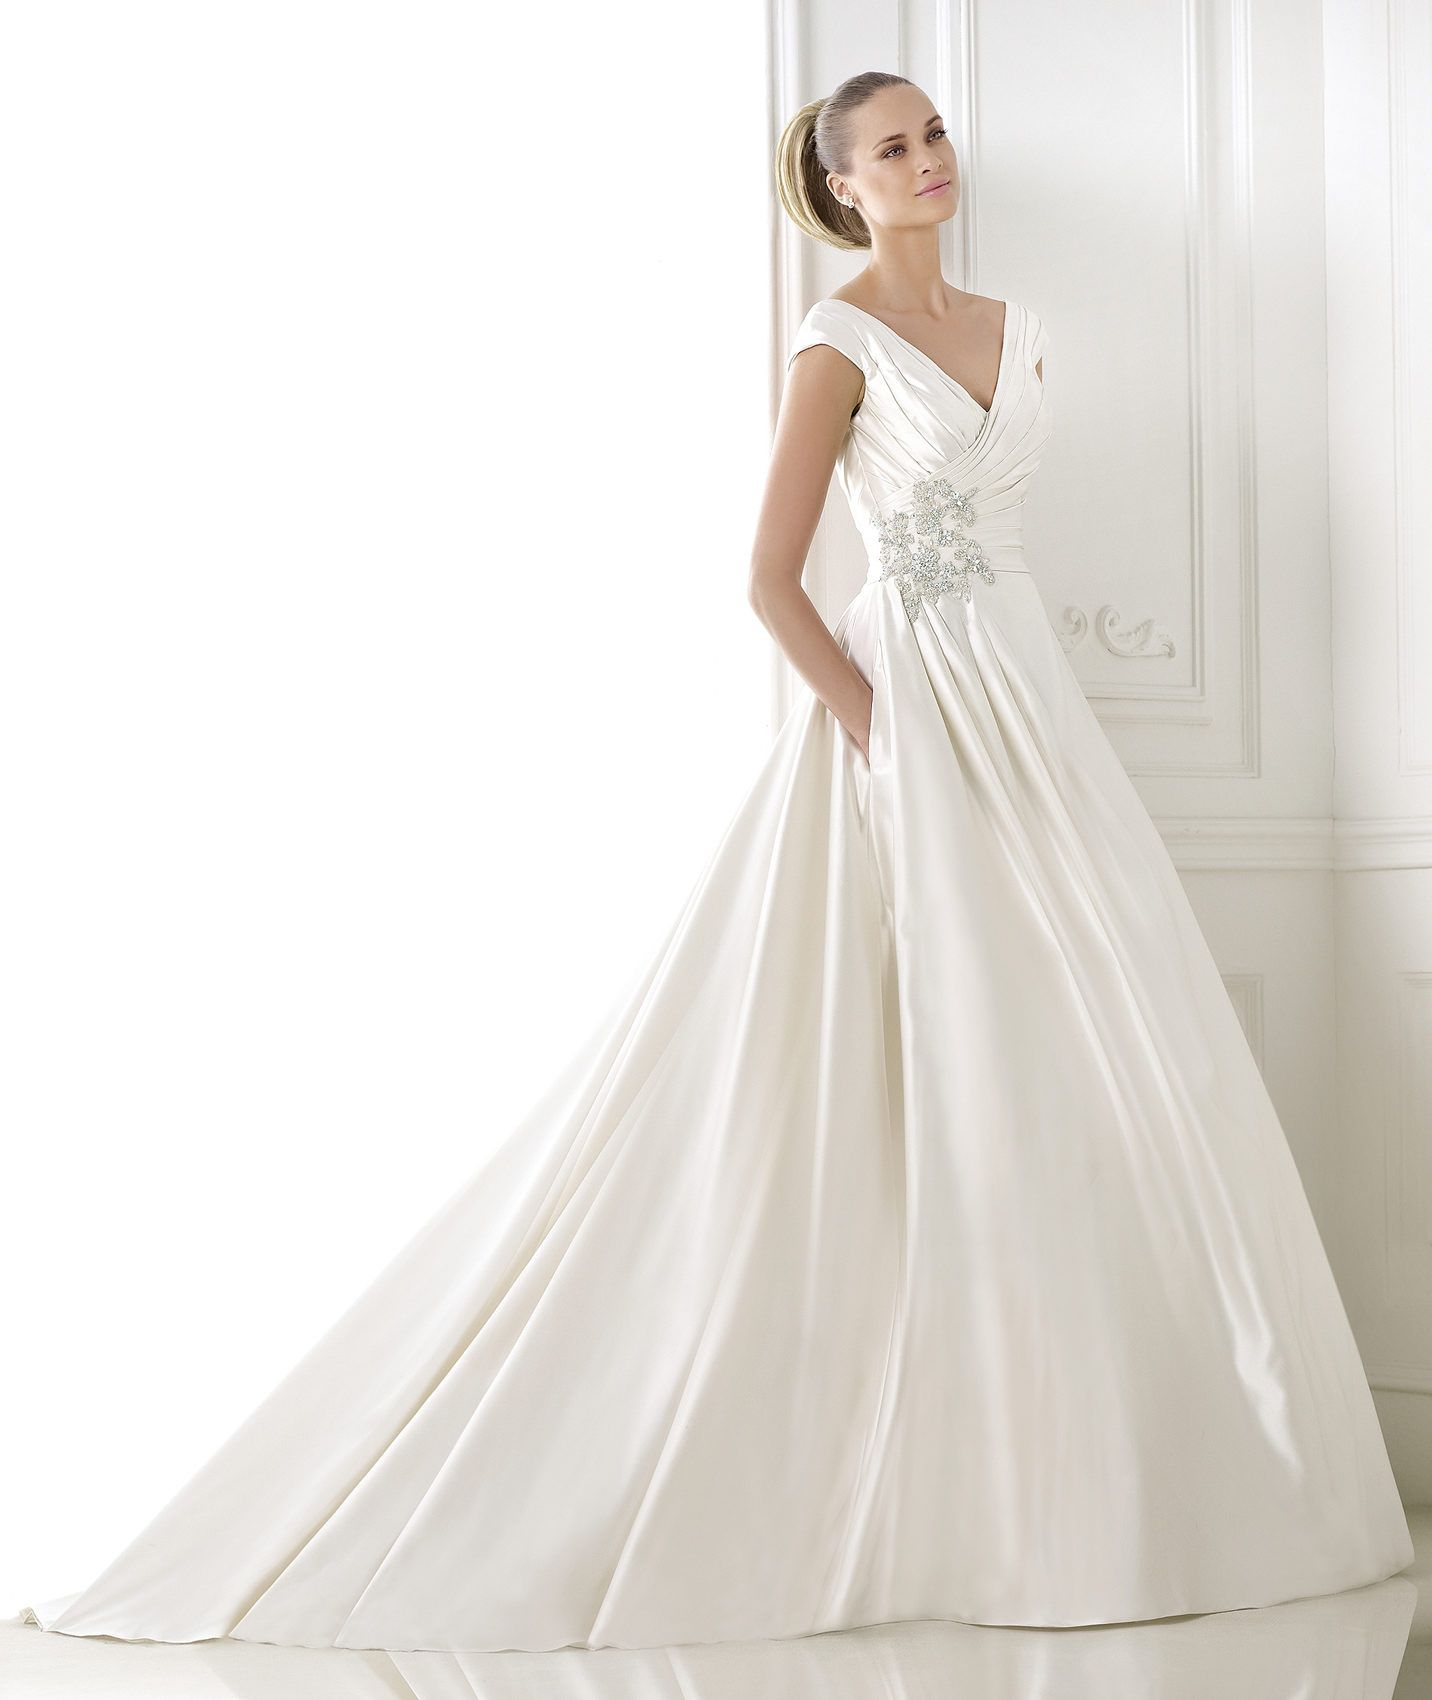 Wedding Dress With Pockets: Taffeta Wedding Dress With Pockets. Collection